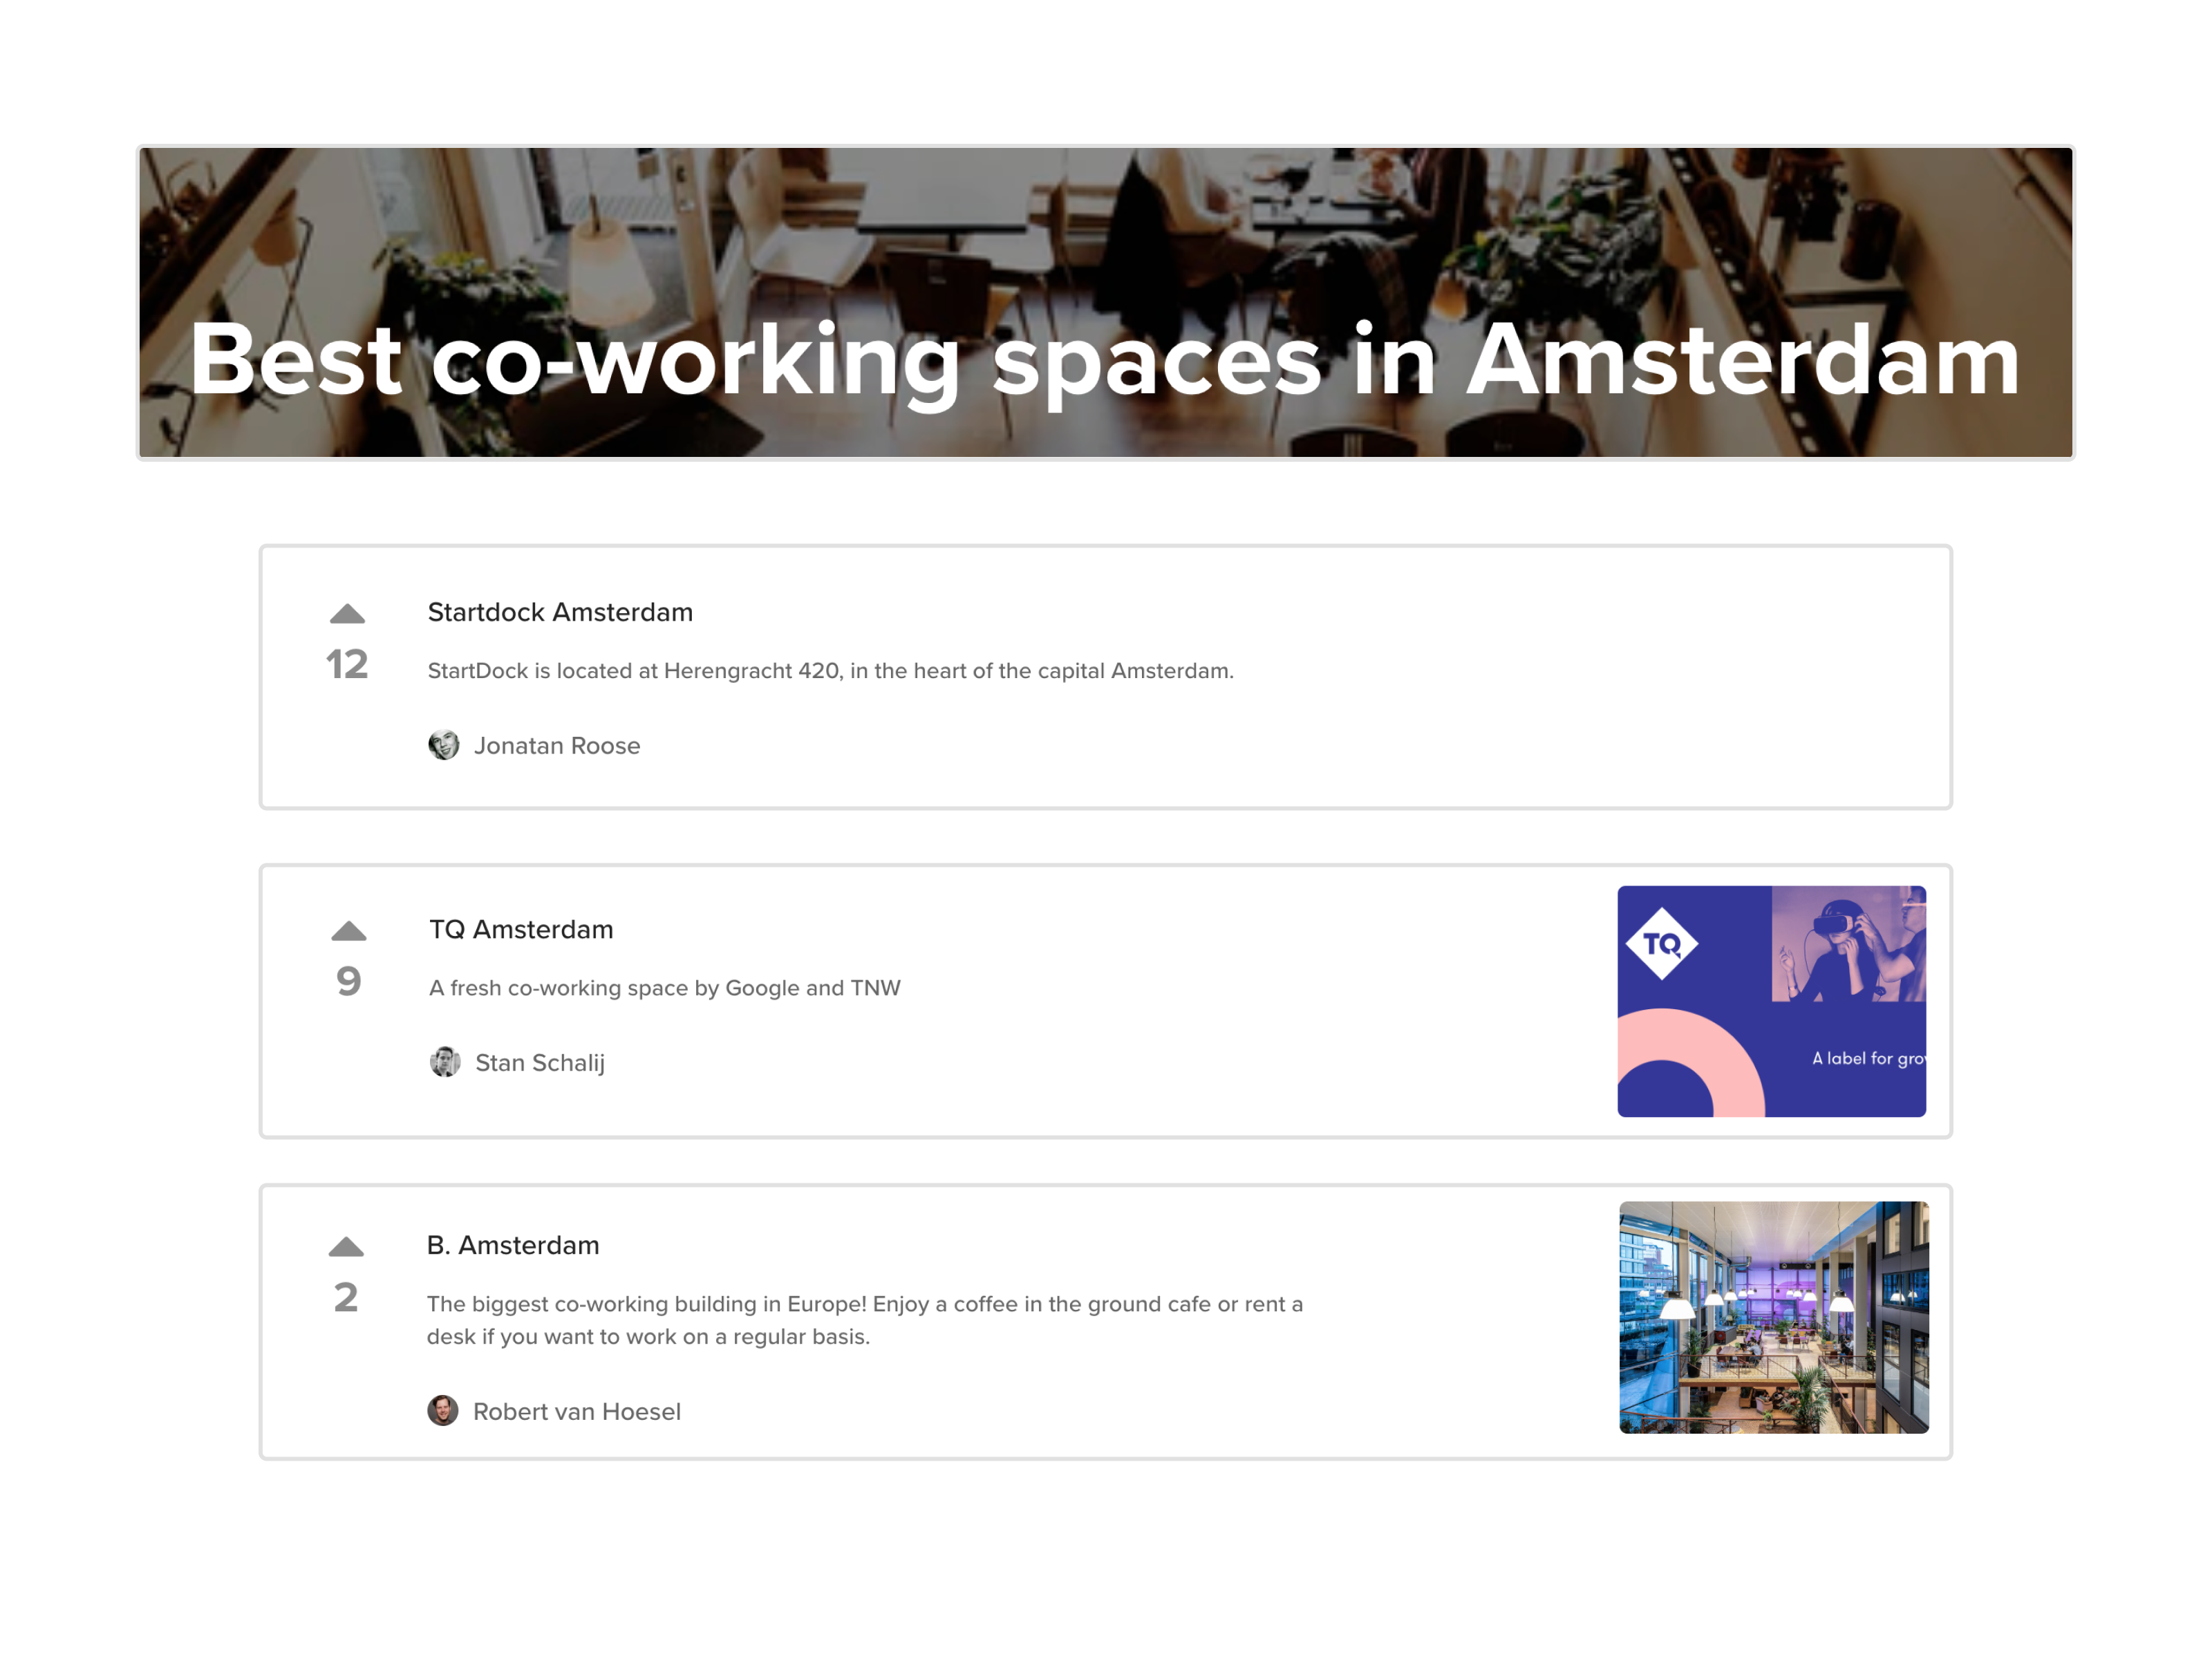 List of the best co-working spaces in Amsterdam